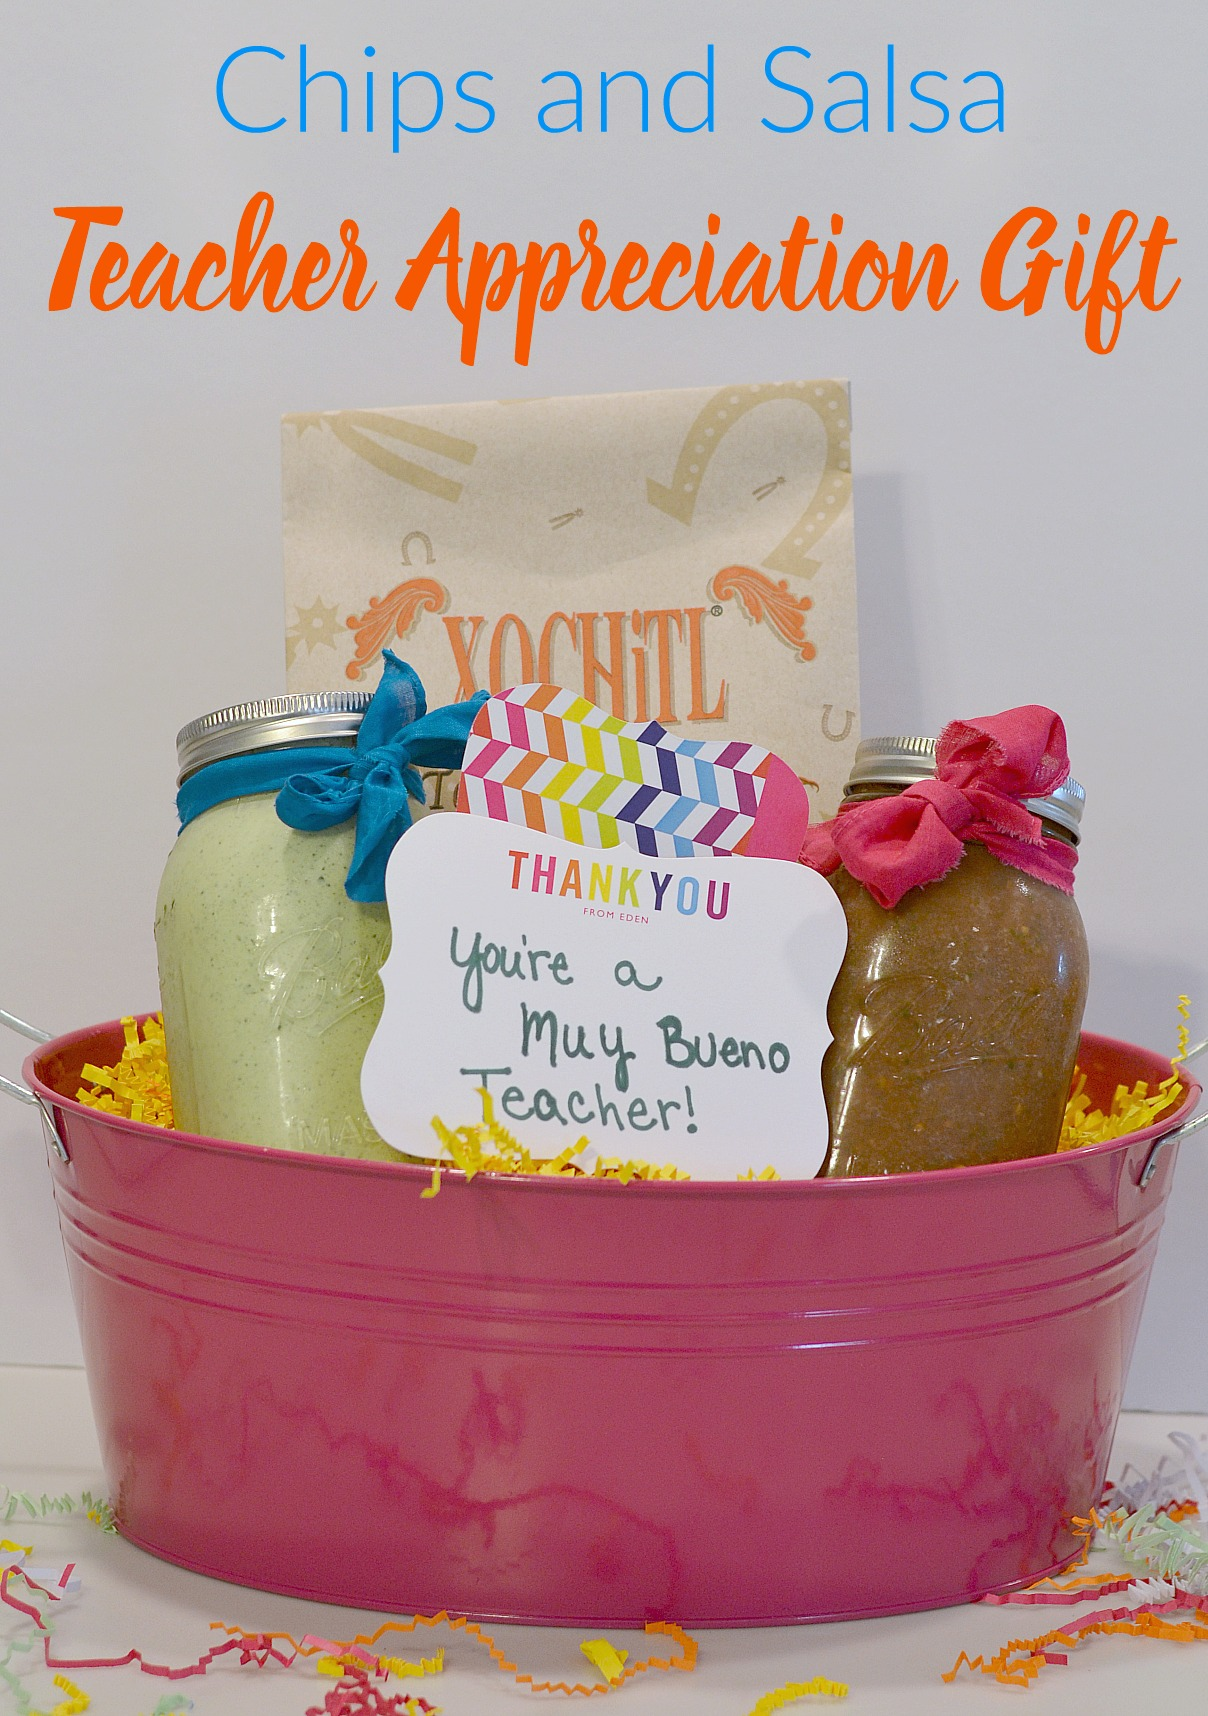 Chips and Salsa Teacher Appreciation Gift